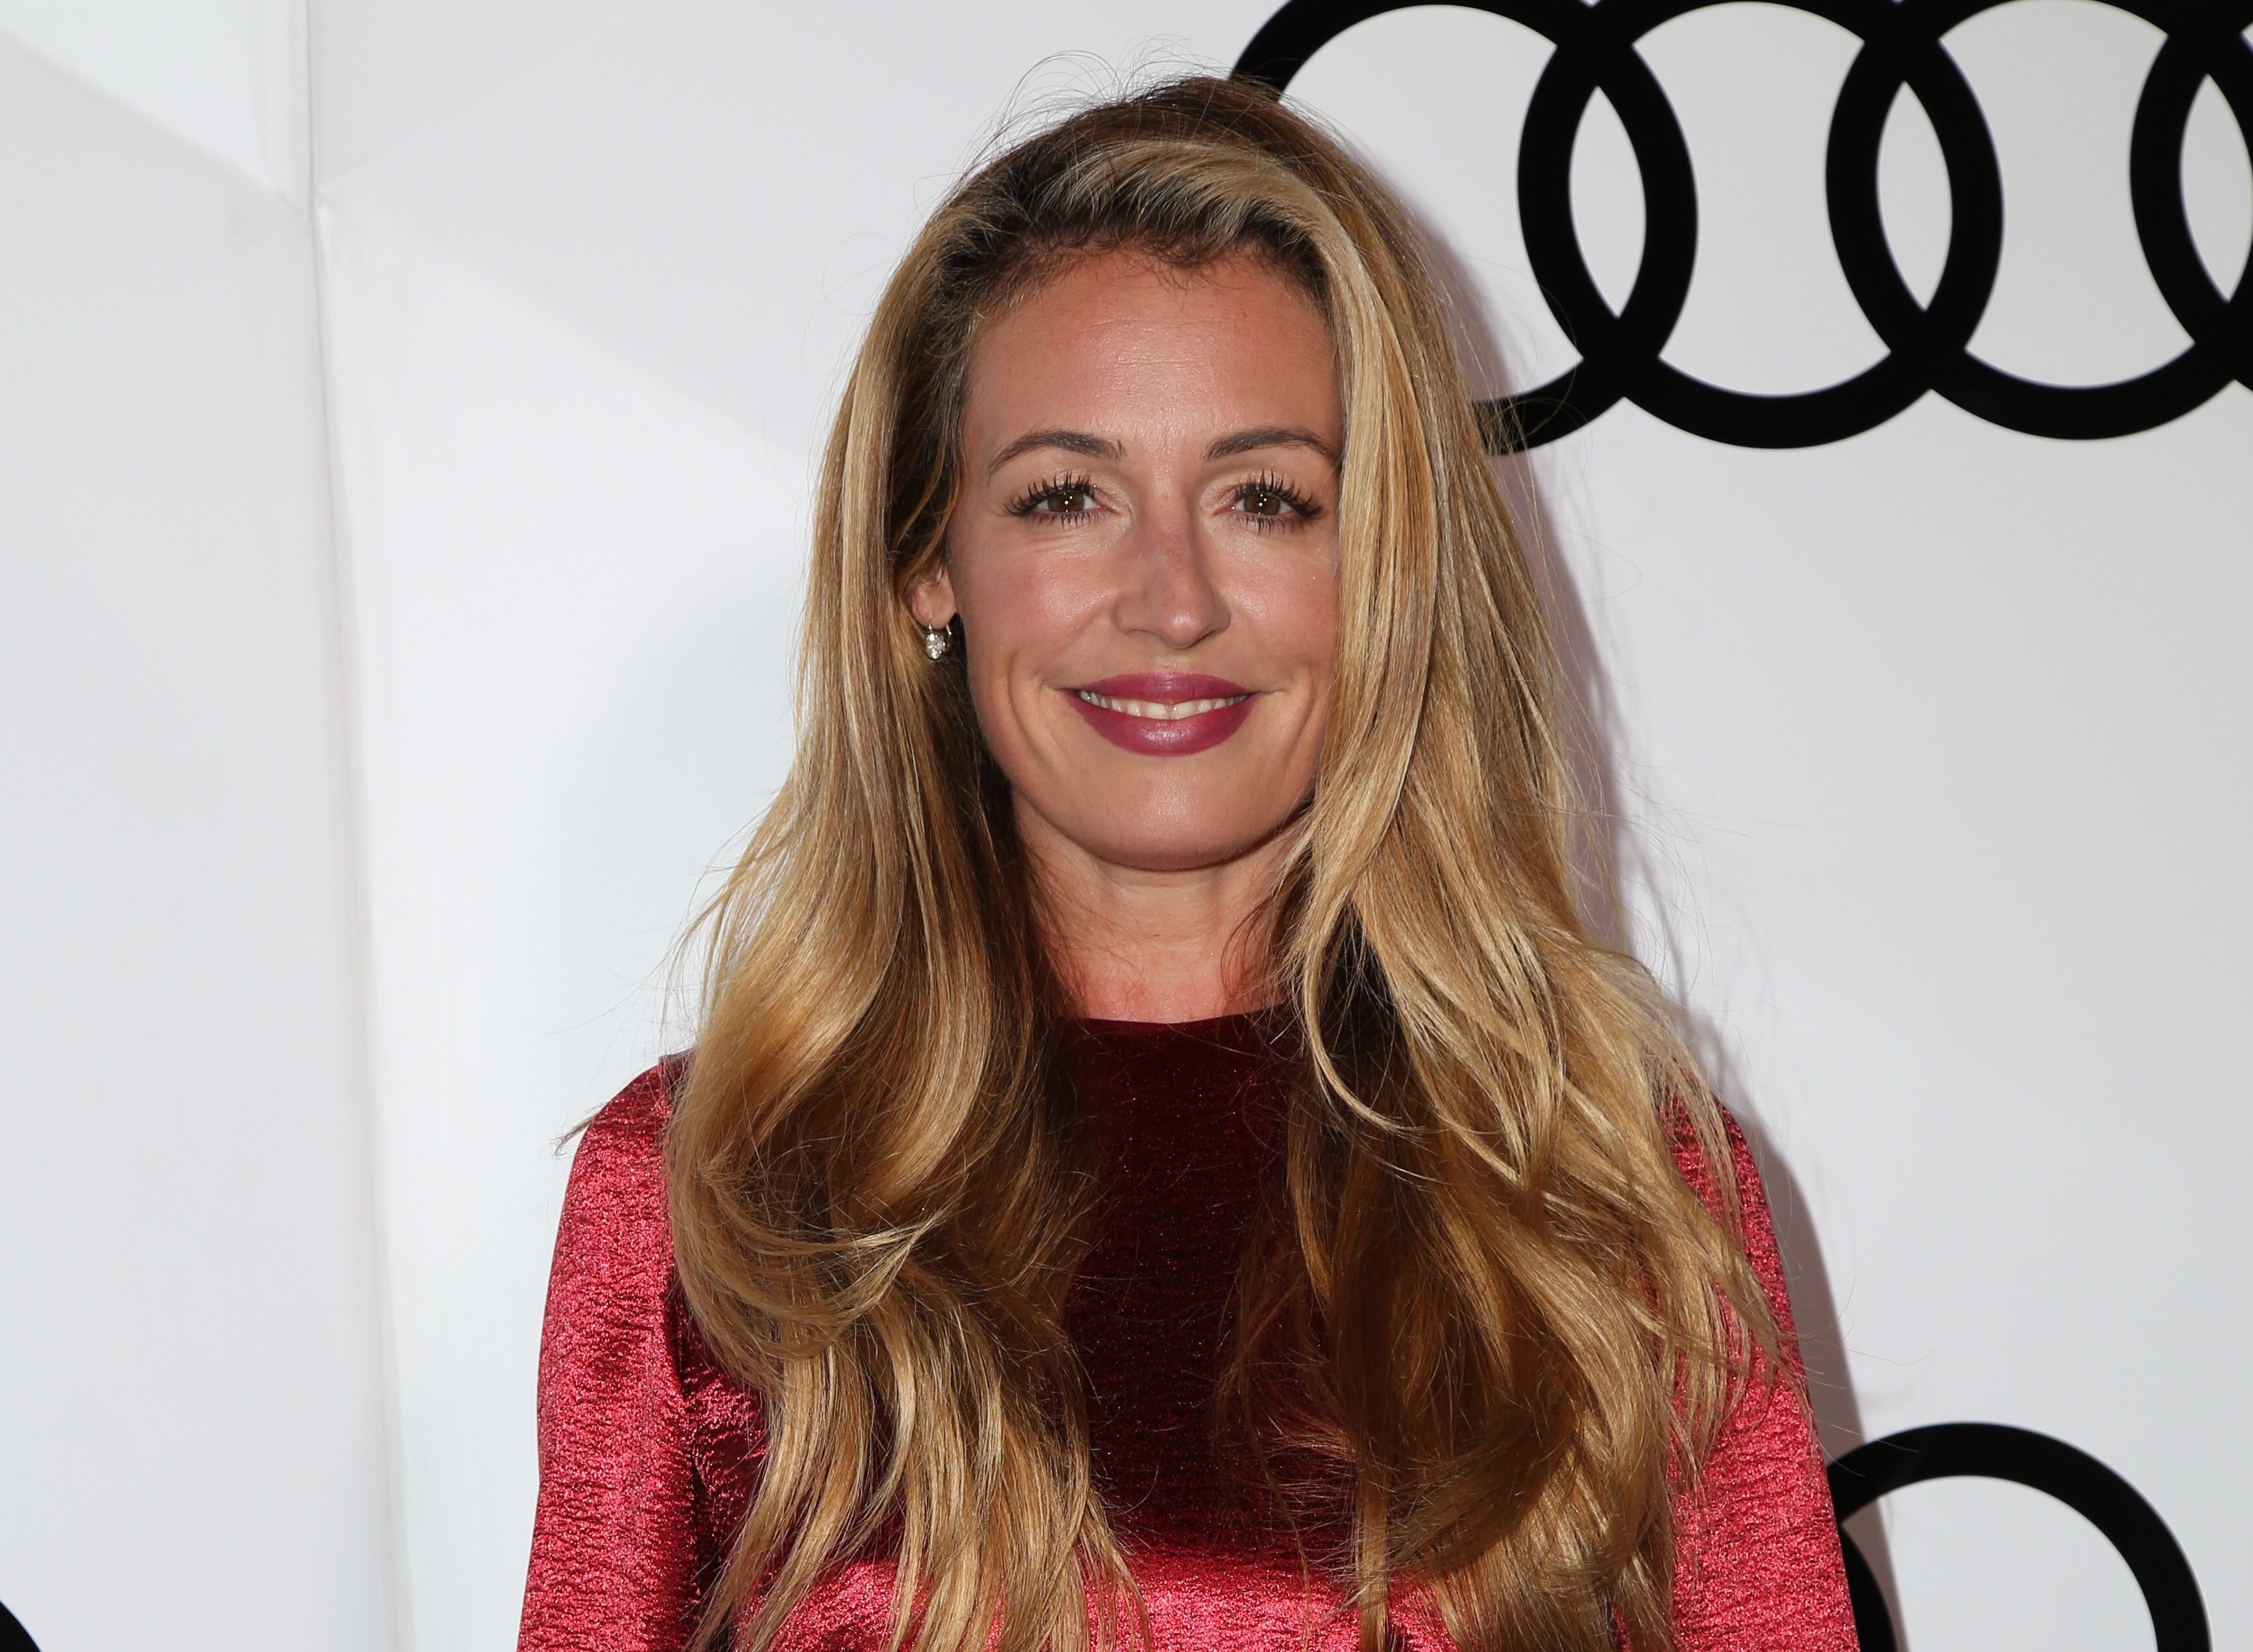 Celebrity Cat Deeley nude (37 foto and video), Topless, Cleavage, Selfie, cameltoe 2006